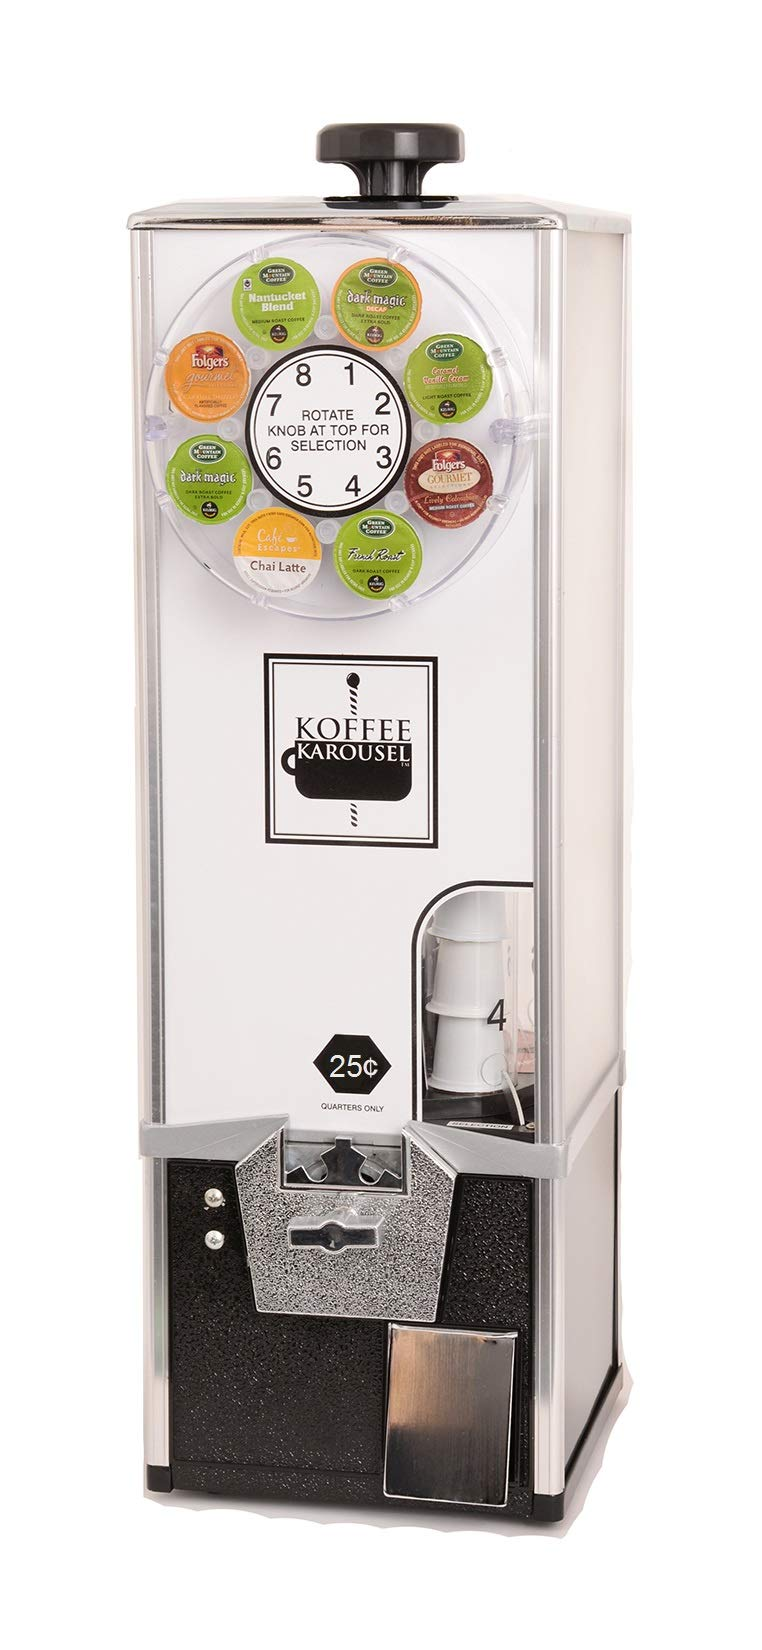 KK Mfg Koffee Karousel K-Cup Vending Machine (1-Quarter Coin Mechanism)